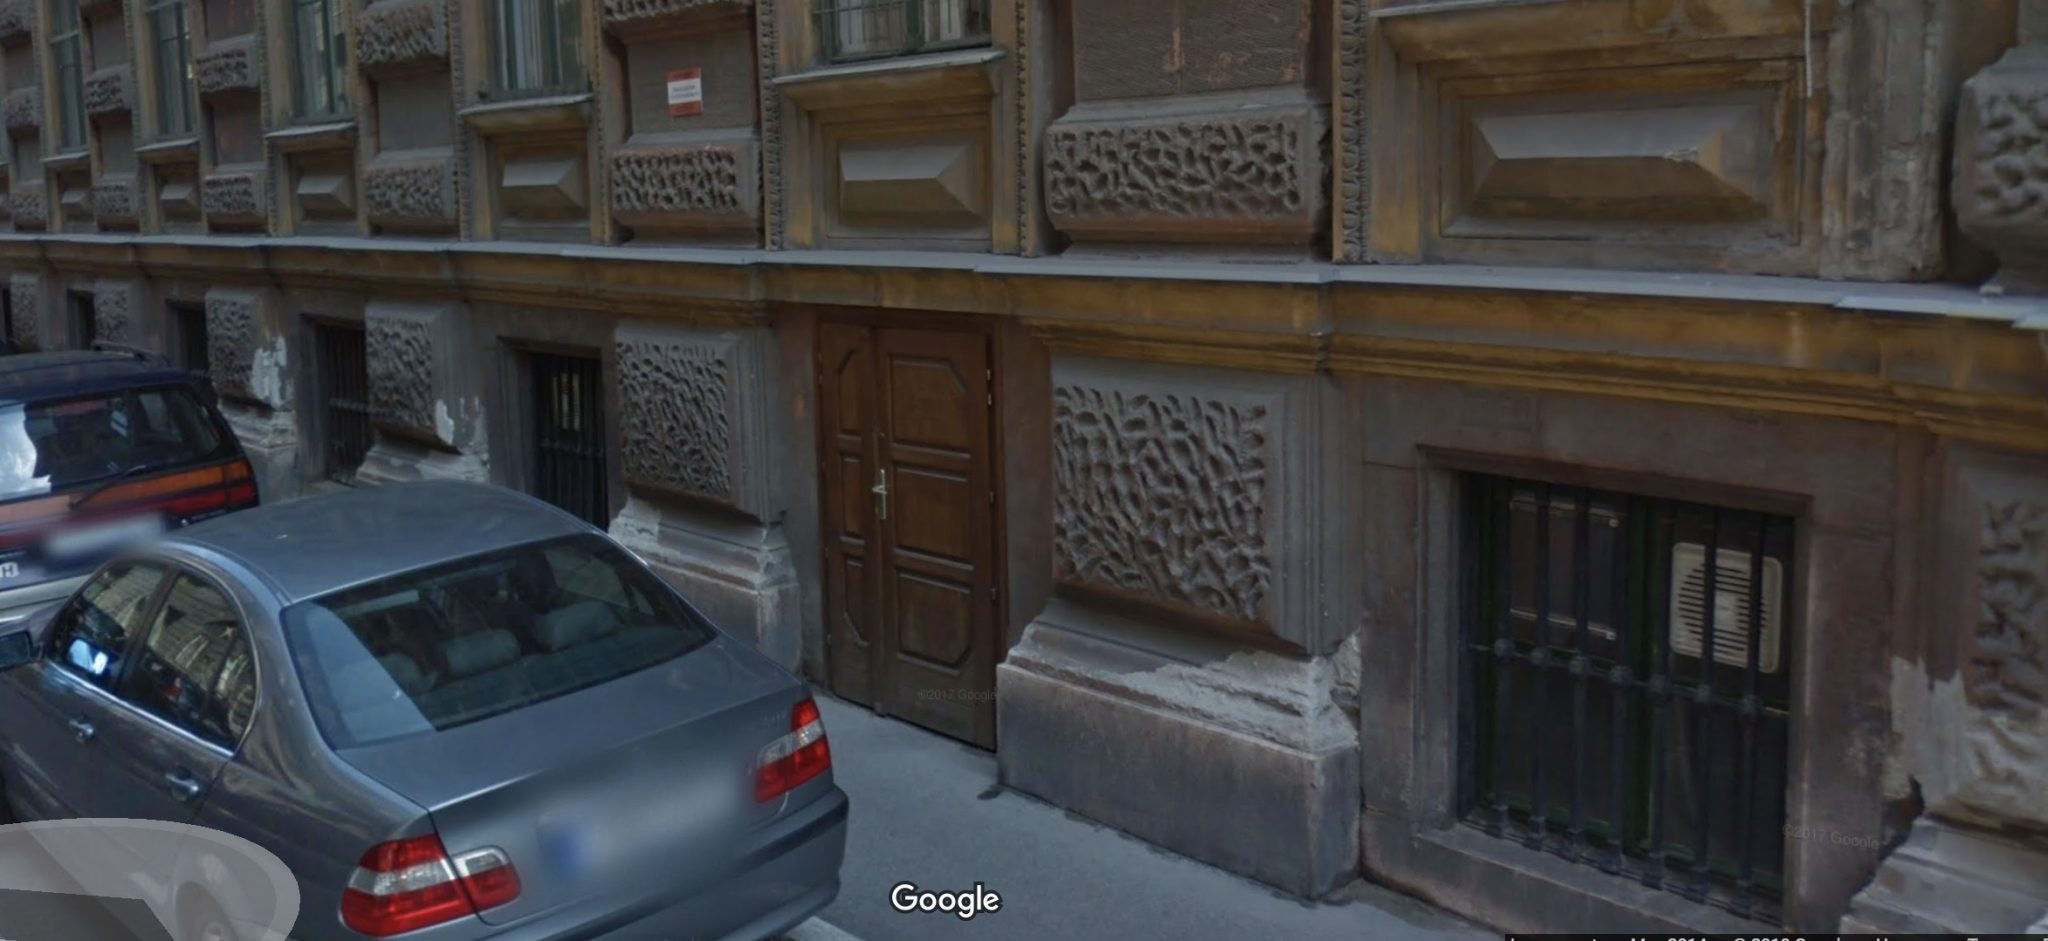 The small front door down to Altair. Courtesy of Google Maps